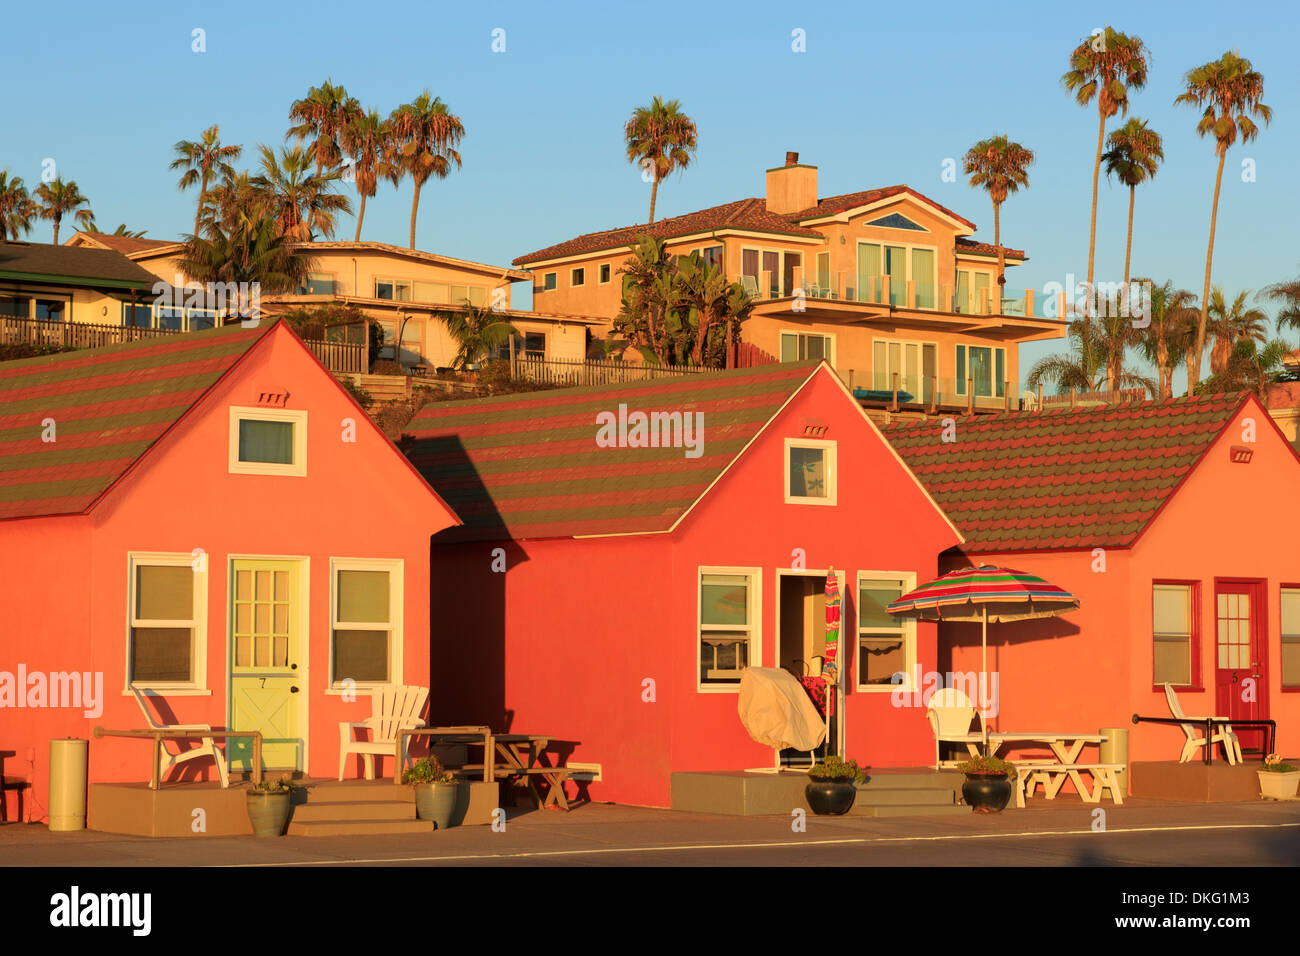 Historic Roberts Cottages in Oceanside, California, United States of America, North America - Stock Image